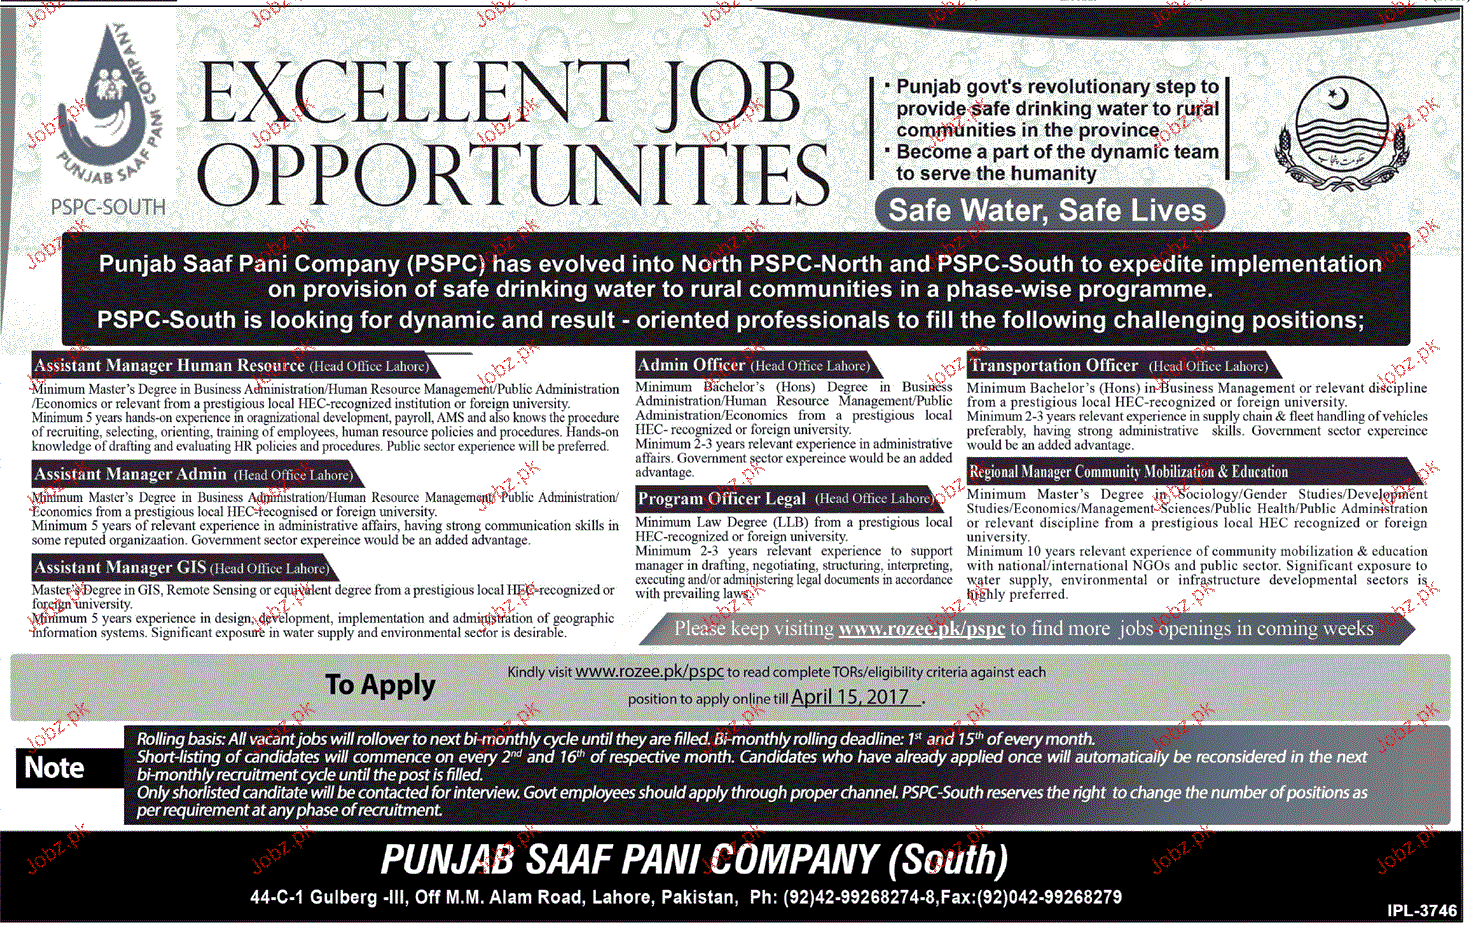 Assistant Manager HR, Admin Officer, Regional Manager Wanted